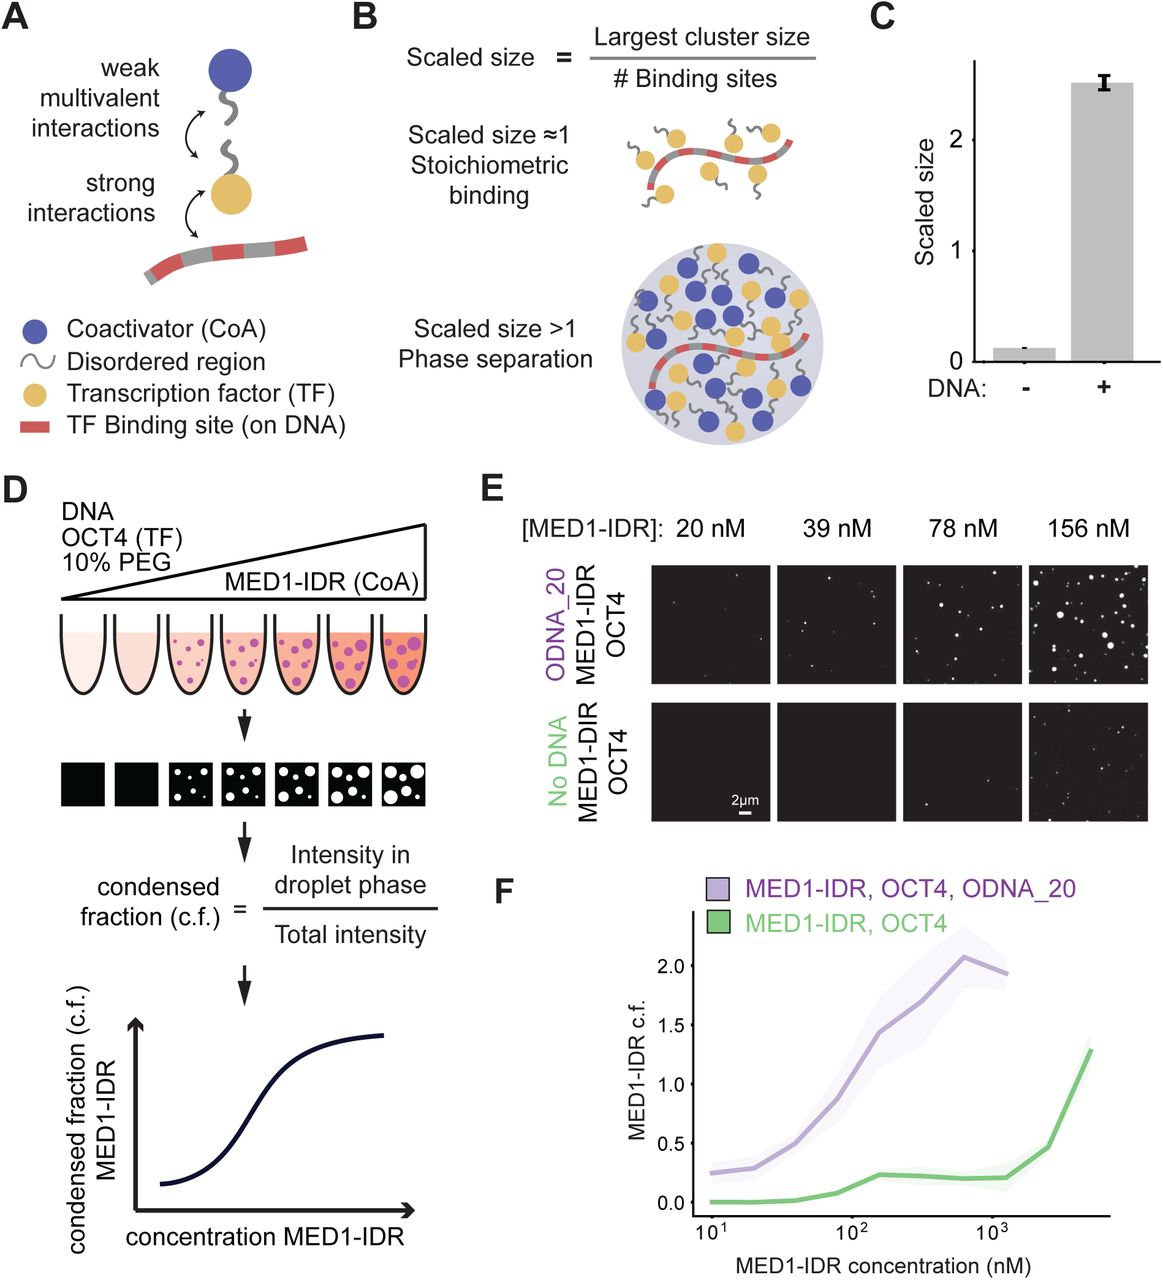 Enhancer features that drive formation of transcriptional